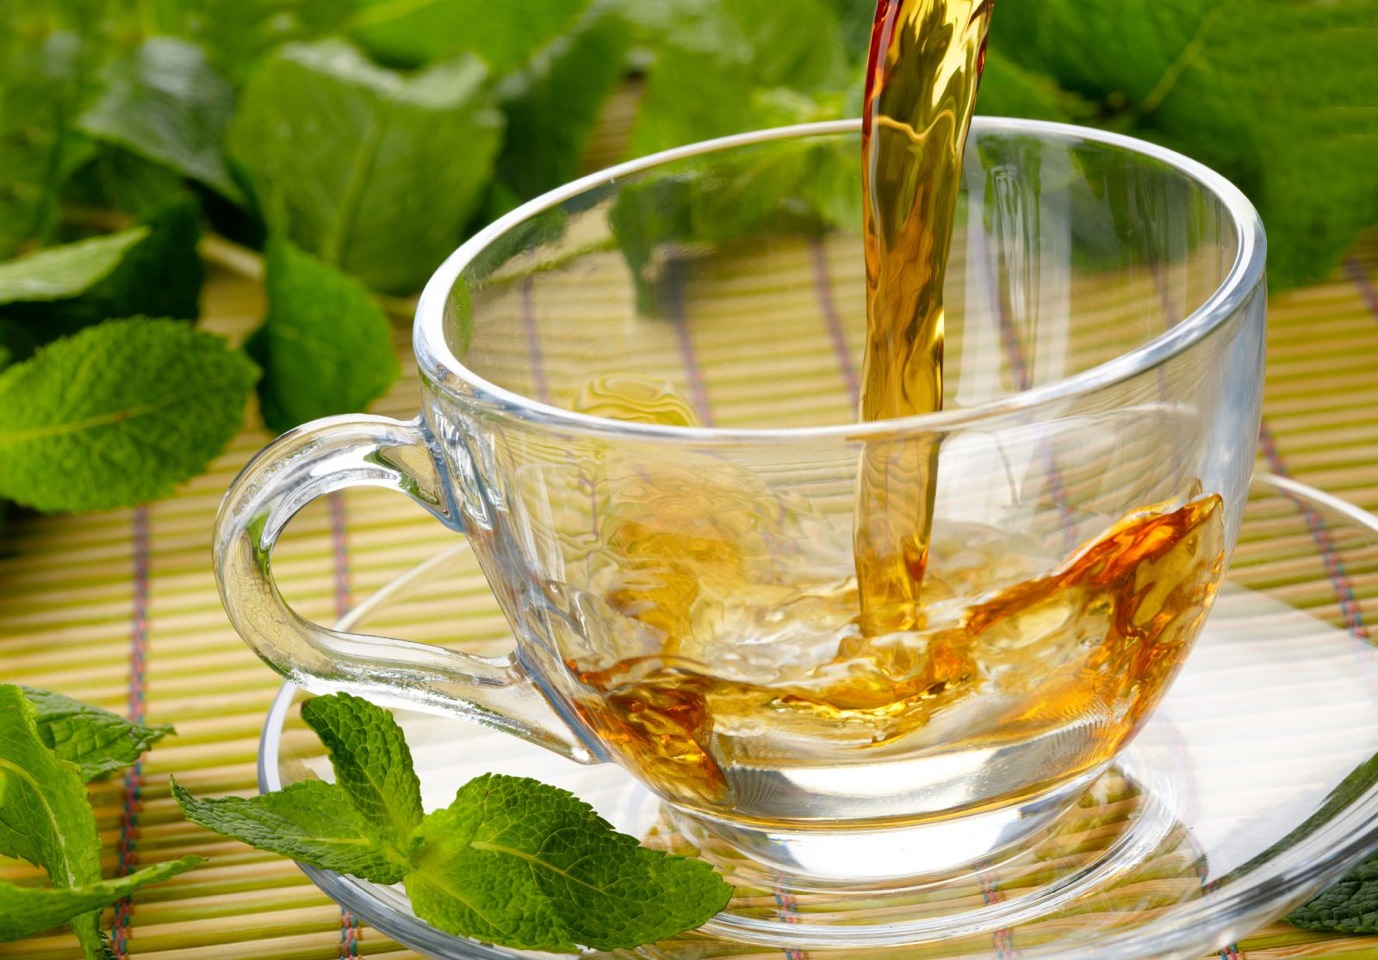 Green tea: First, it includes caffeine, which accelerates your heart rate and gets your metabolism going. The tea also contains a chemical, known as EGCG, that stimulates the nervous system and helps you to burn calories at a faster rate.